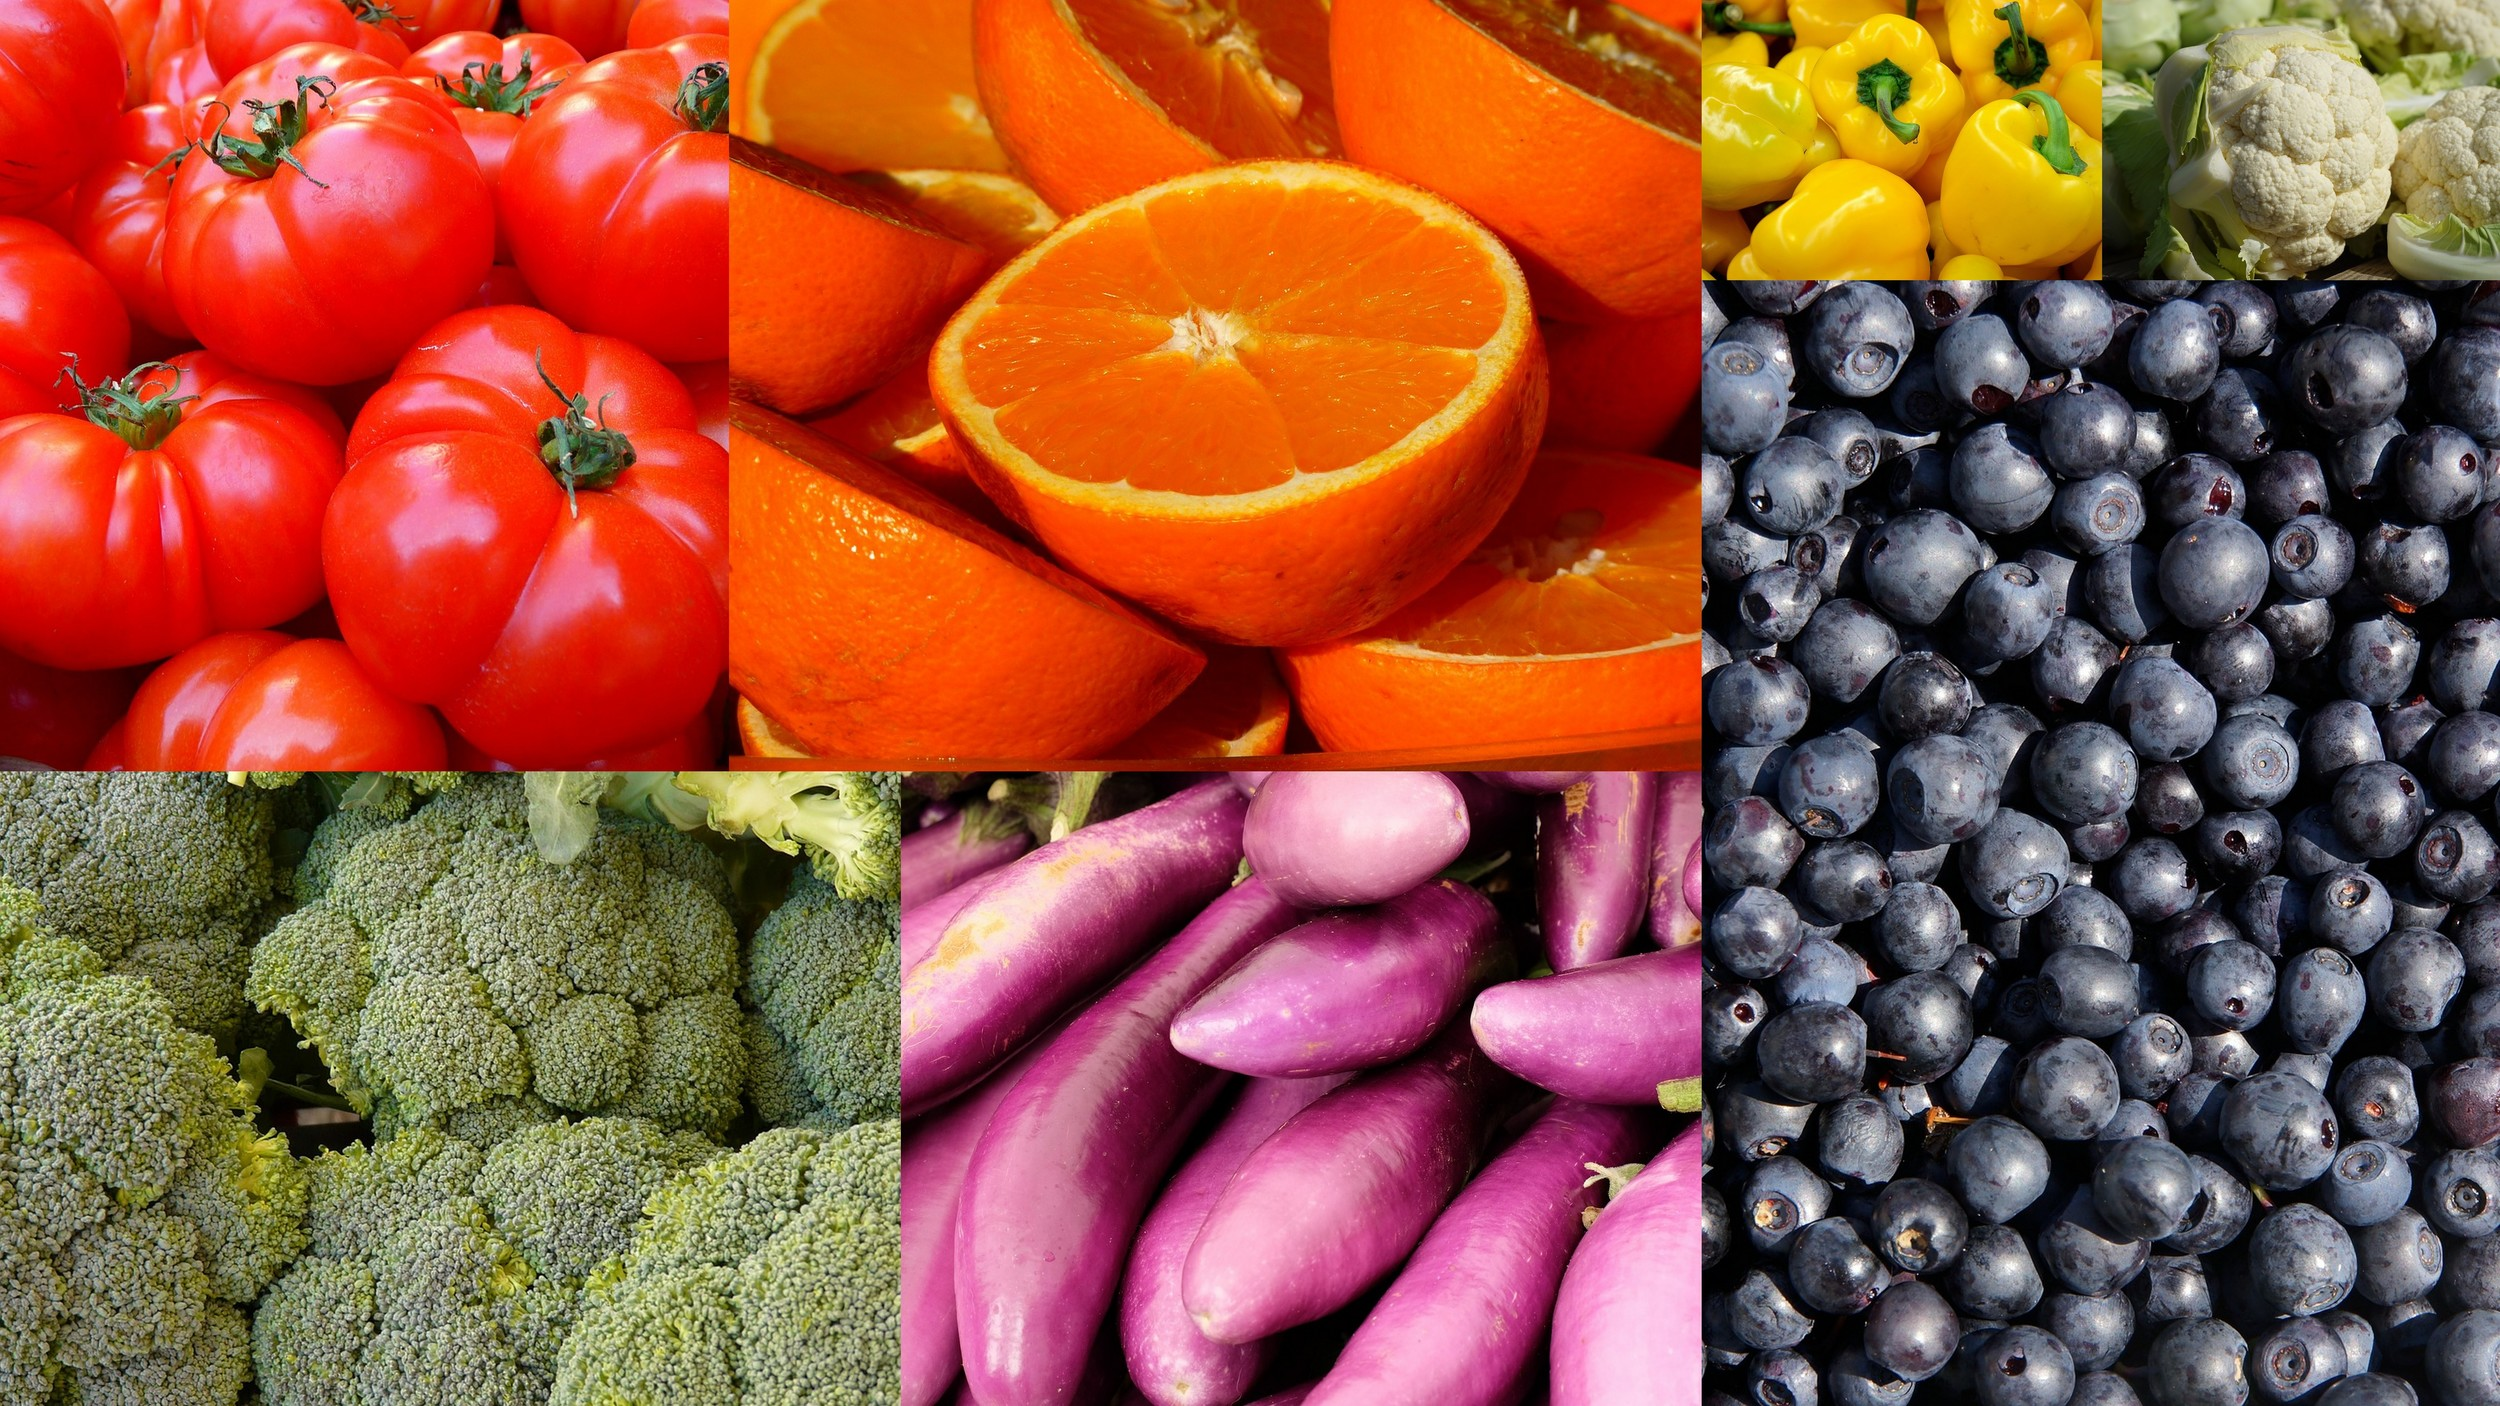 Antioxidants, Vitamins, Minerals, and Phytochemicals for Fertility